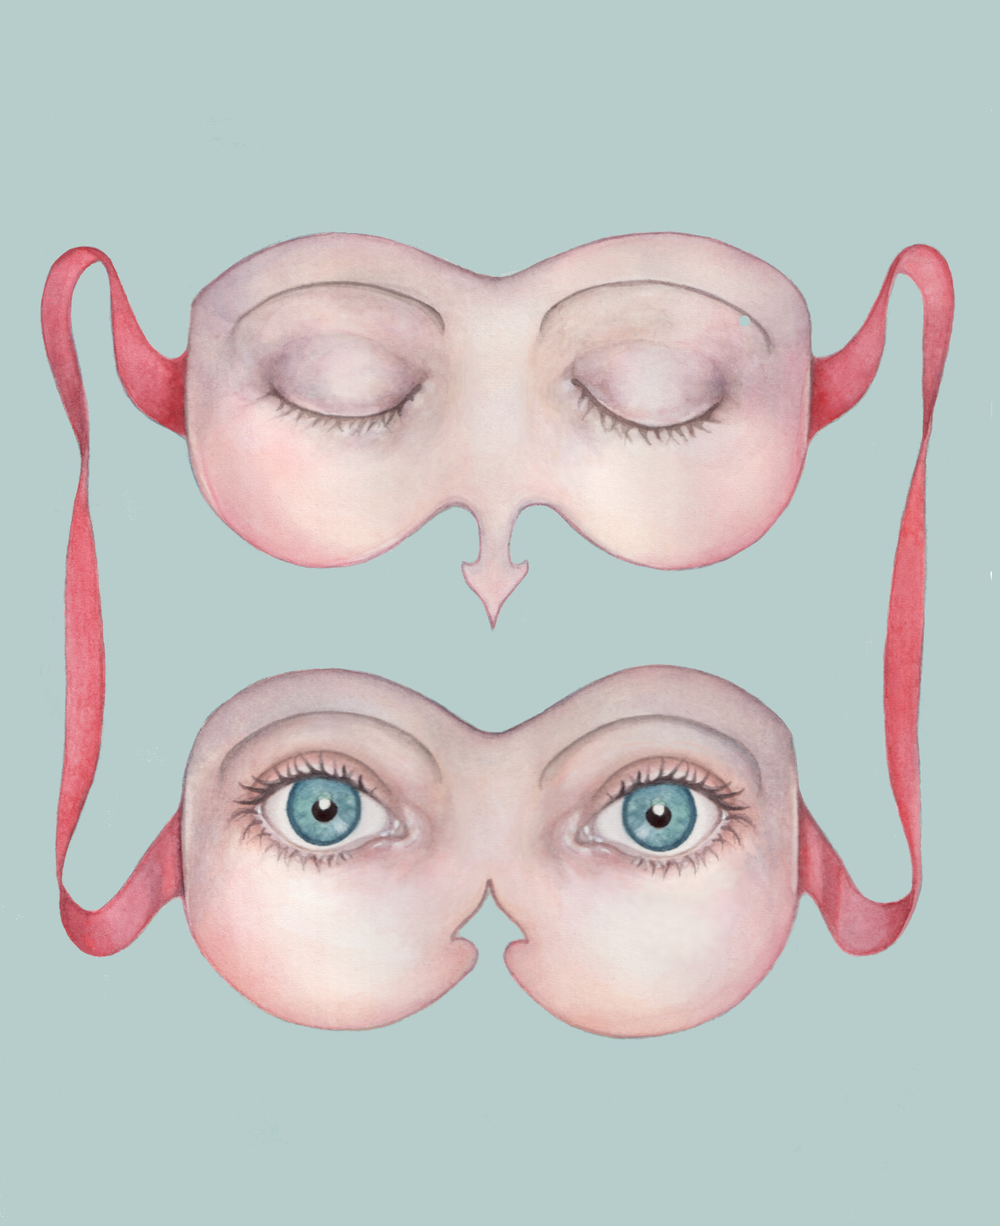 Open_your_eyes.png